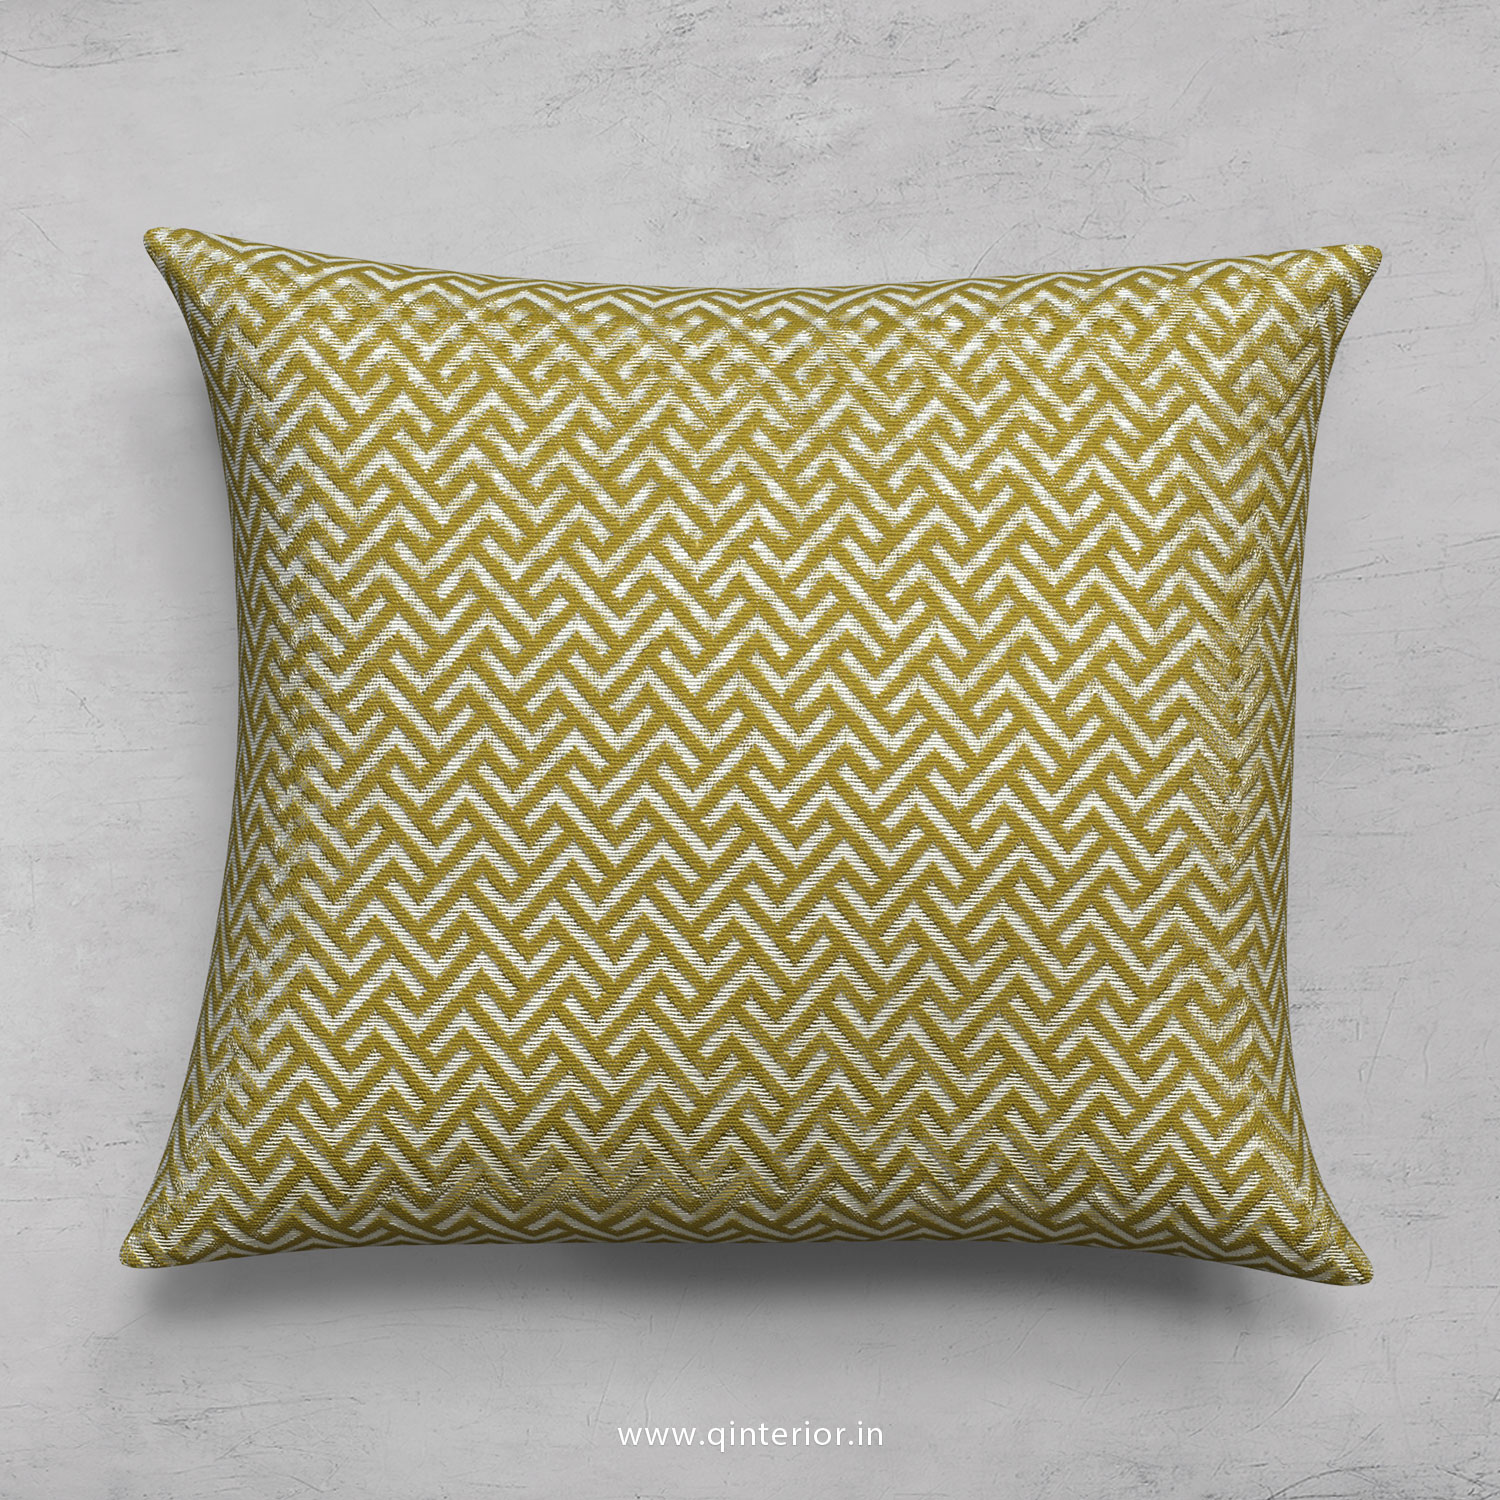 Yellow Zigzag Cushion With Cushion Cover - CUS001